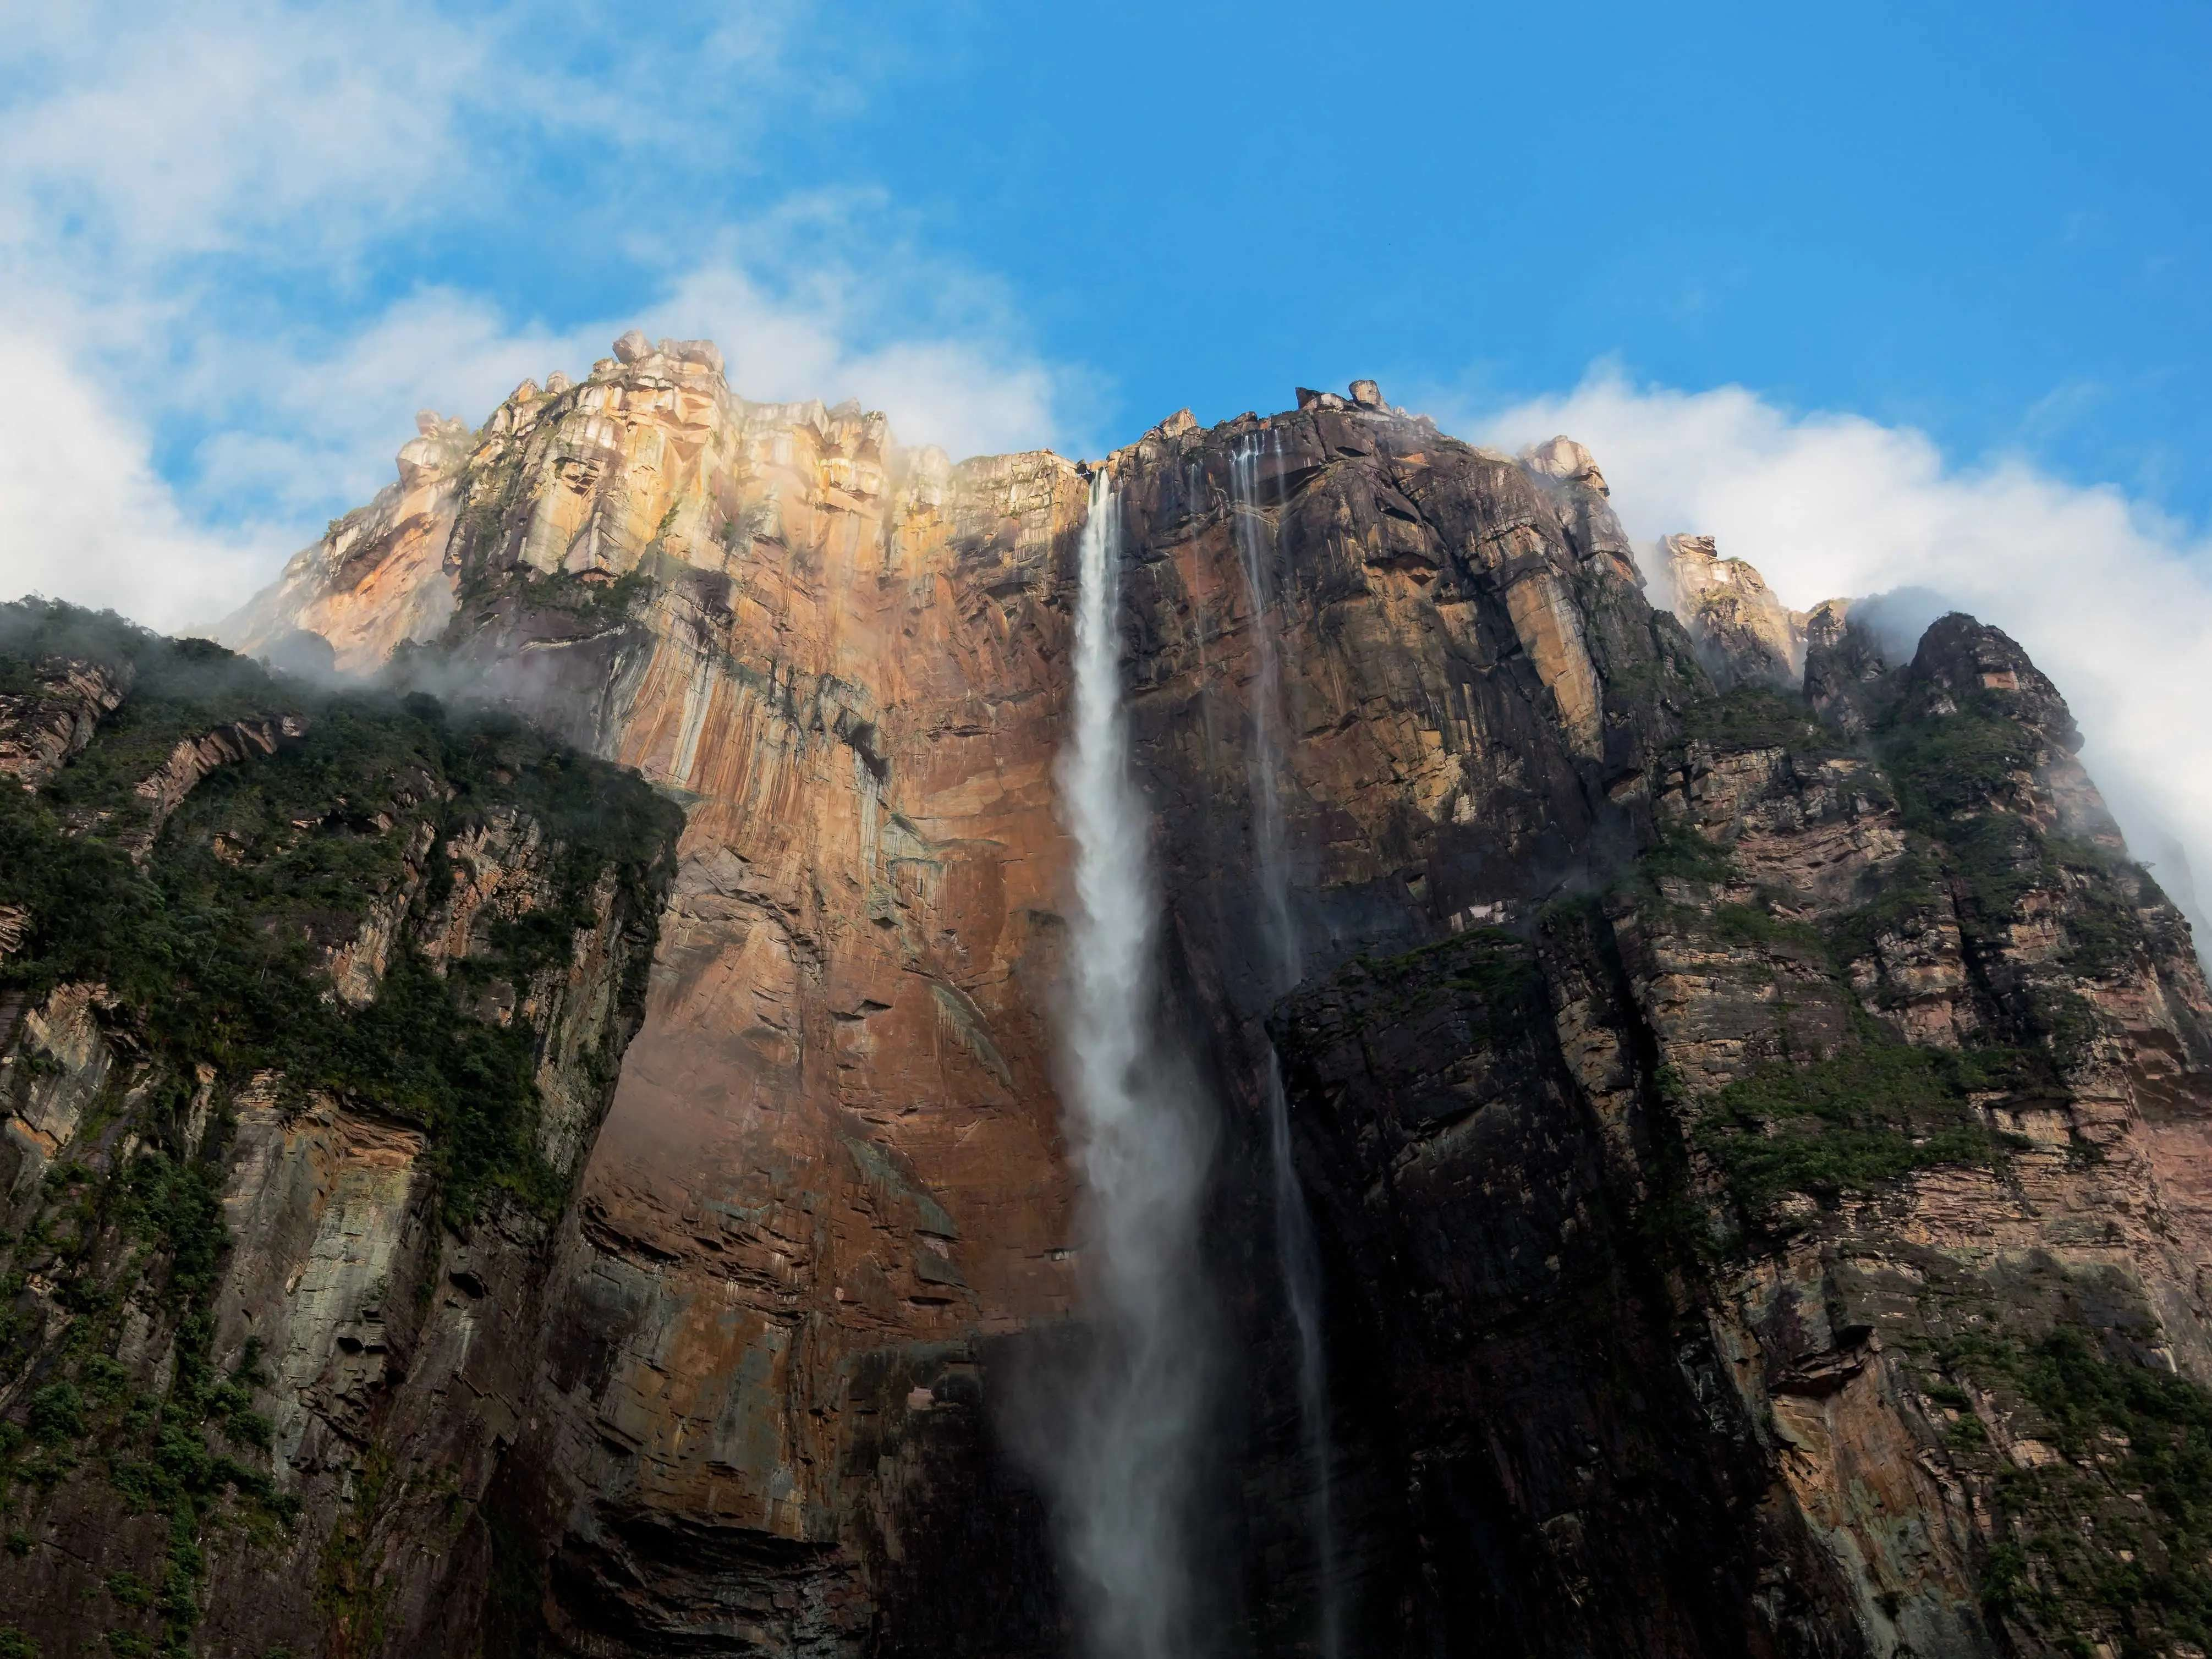 Check out Venezuela's Angel Falls, one of the tallest waterfalls on earth.